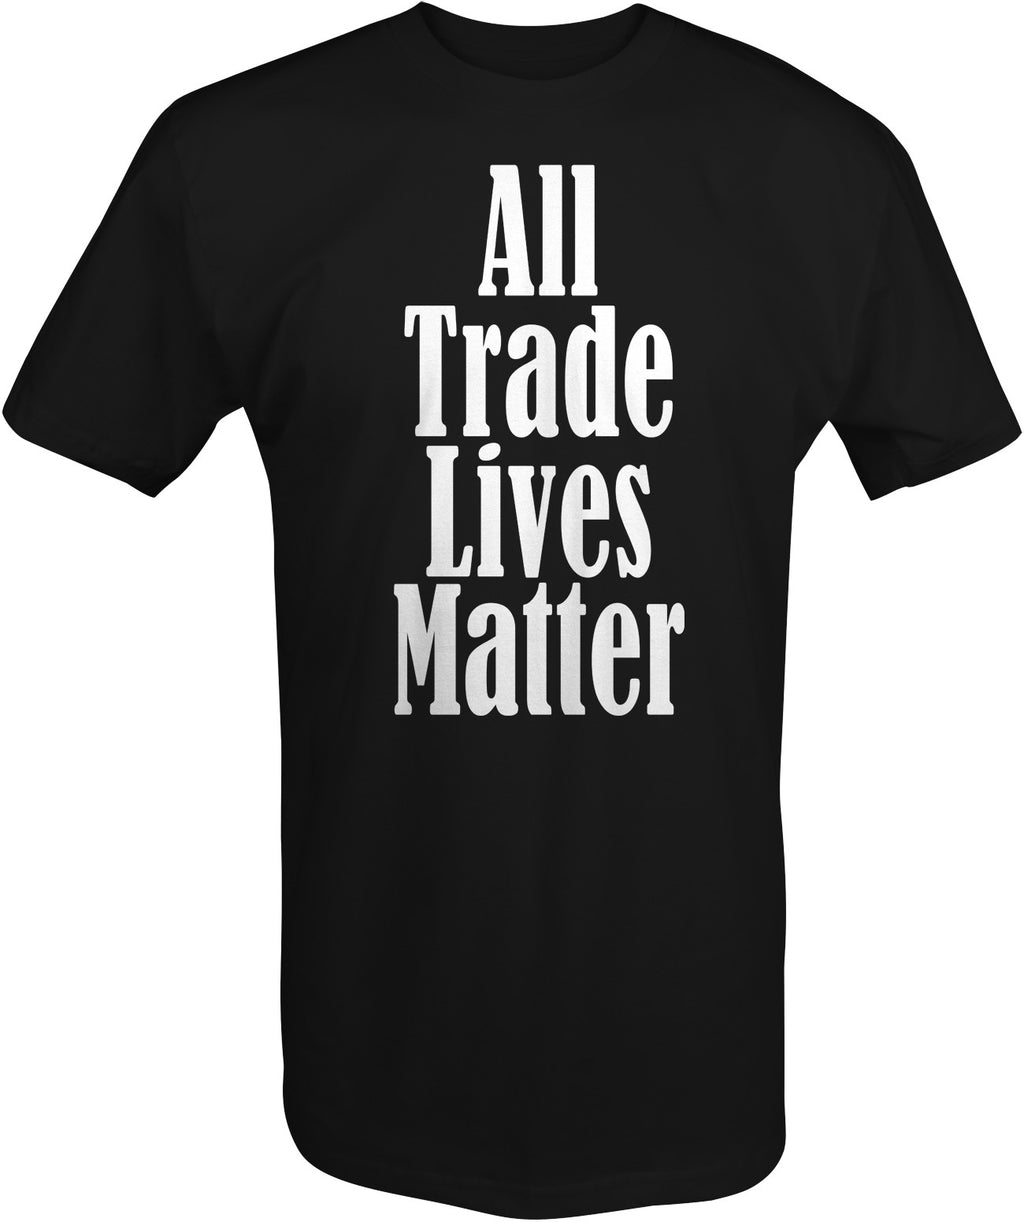 Bolts & Hose™ All Trade Lives Matter - Bolts & Hose